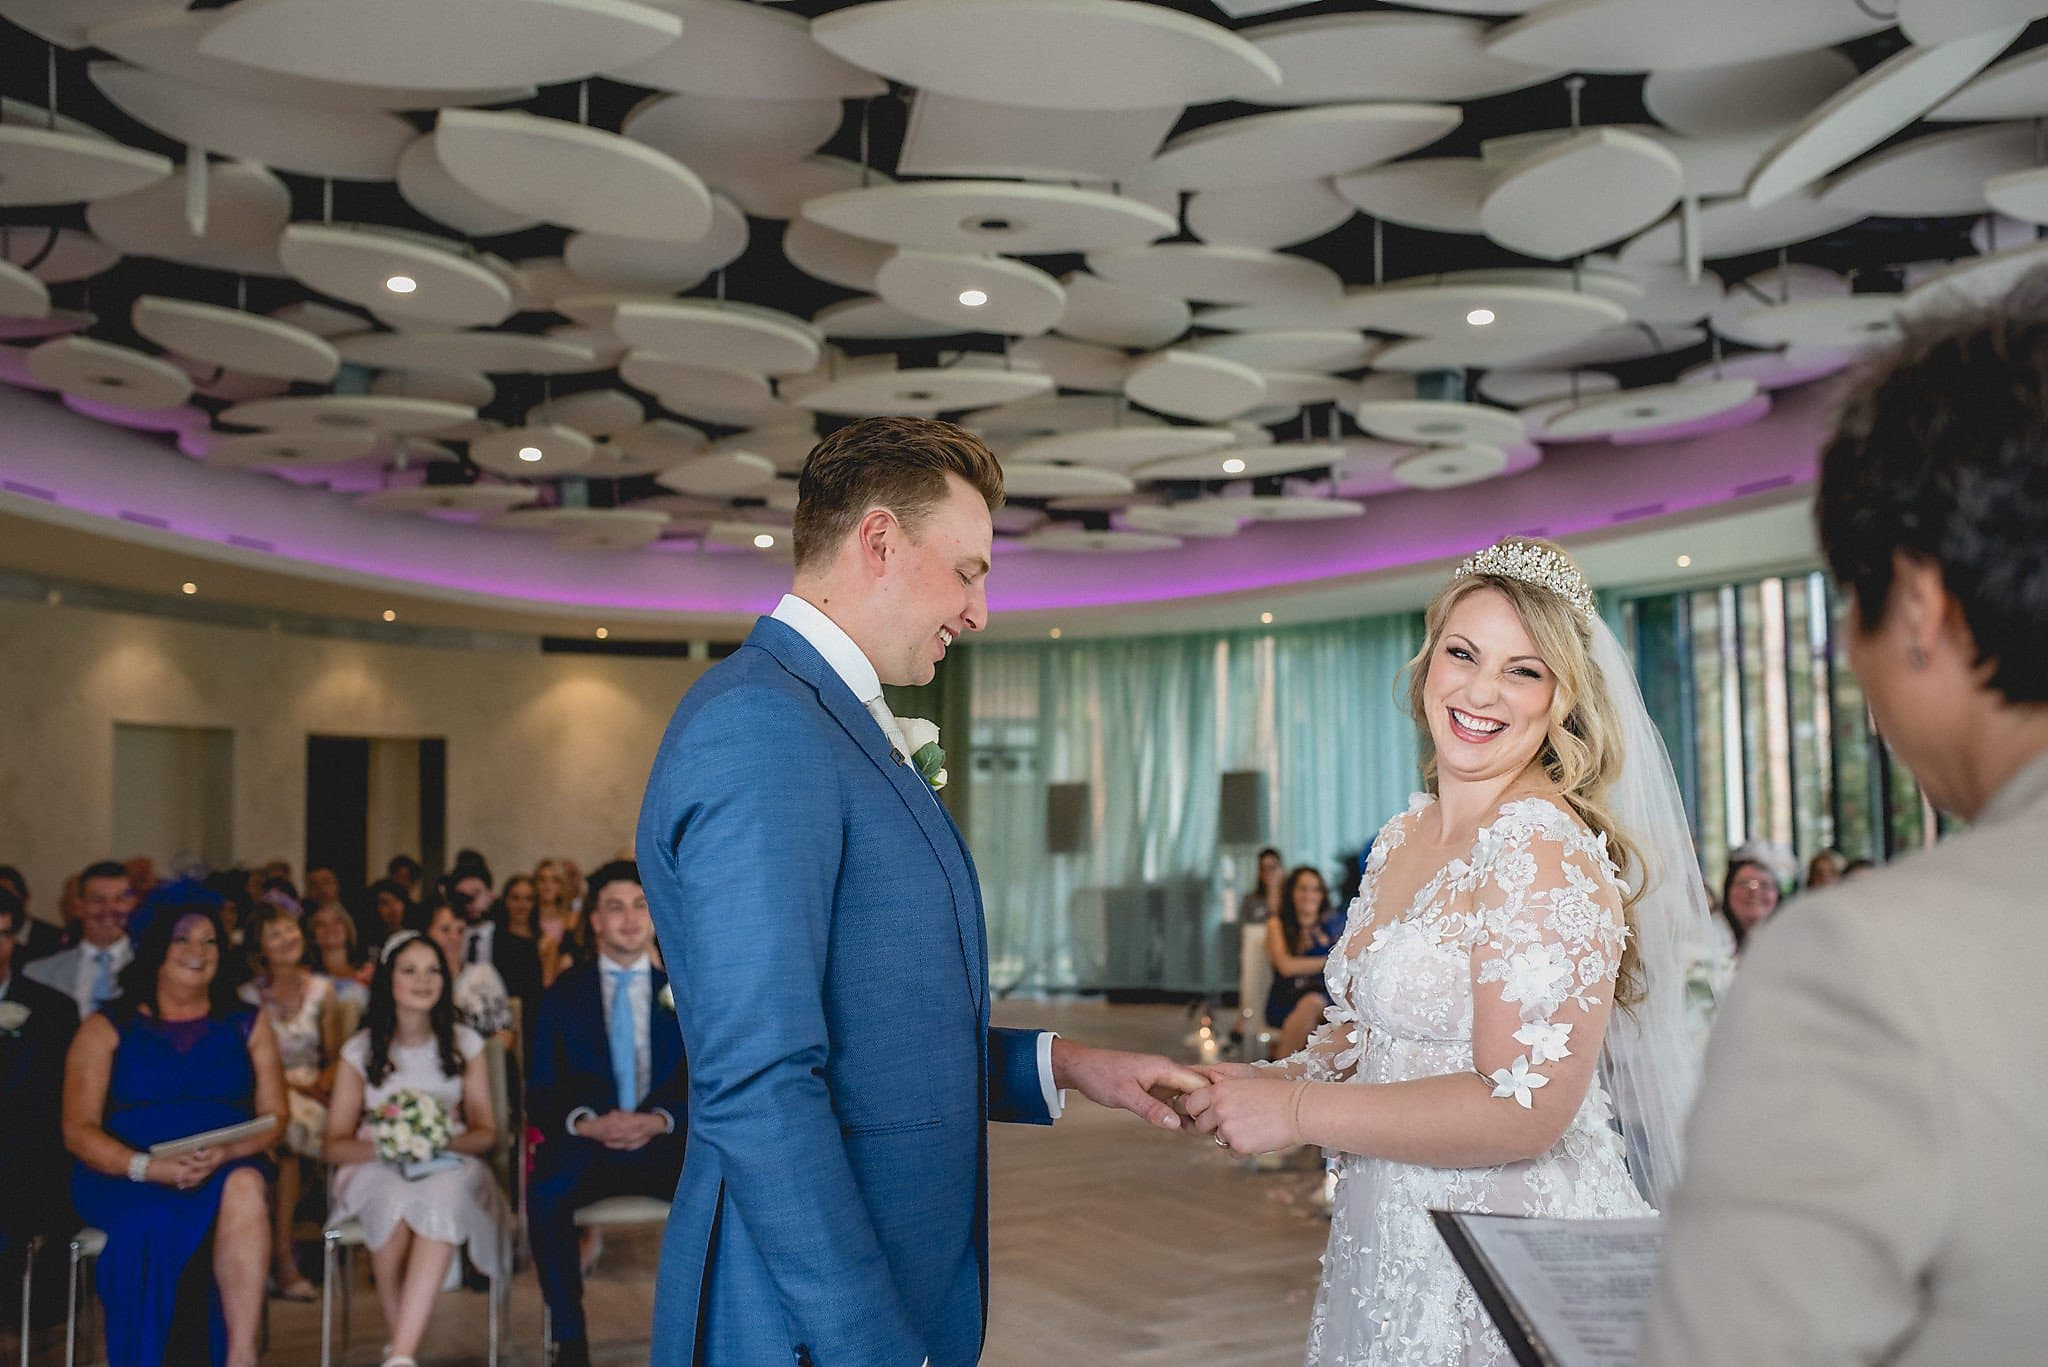 Bride and groom laugh together during their wedding ceremony